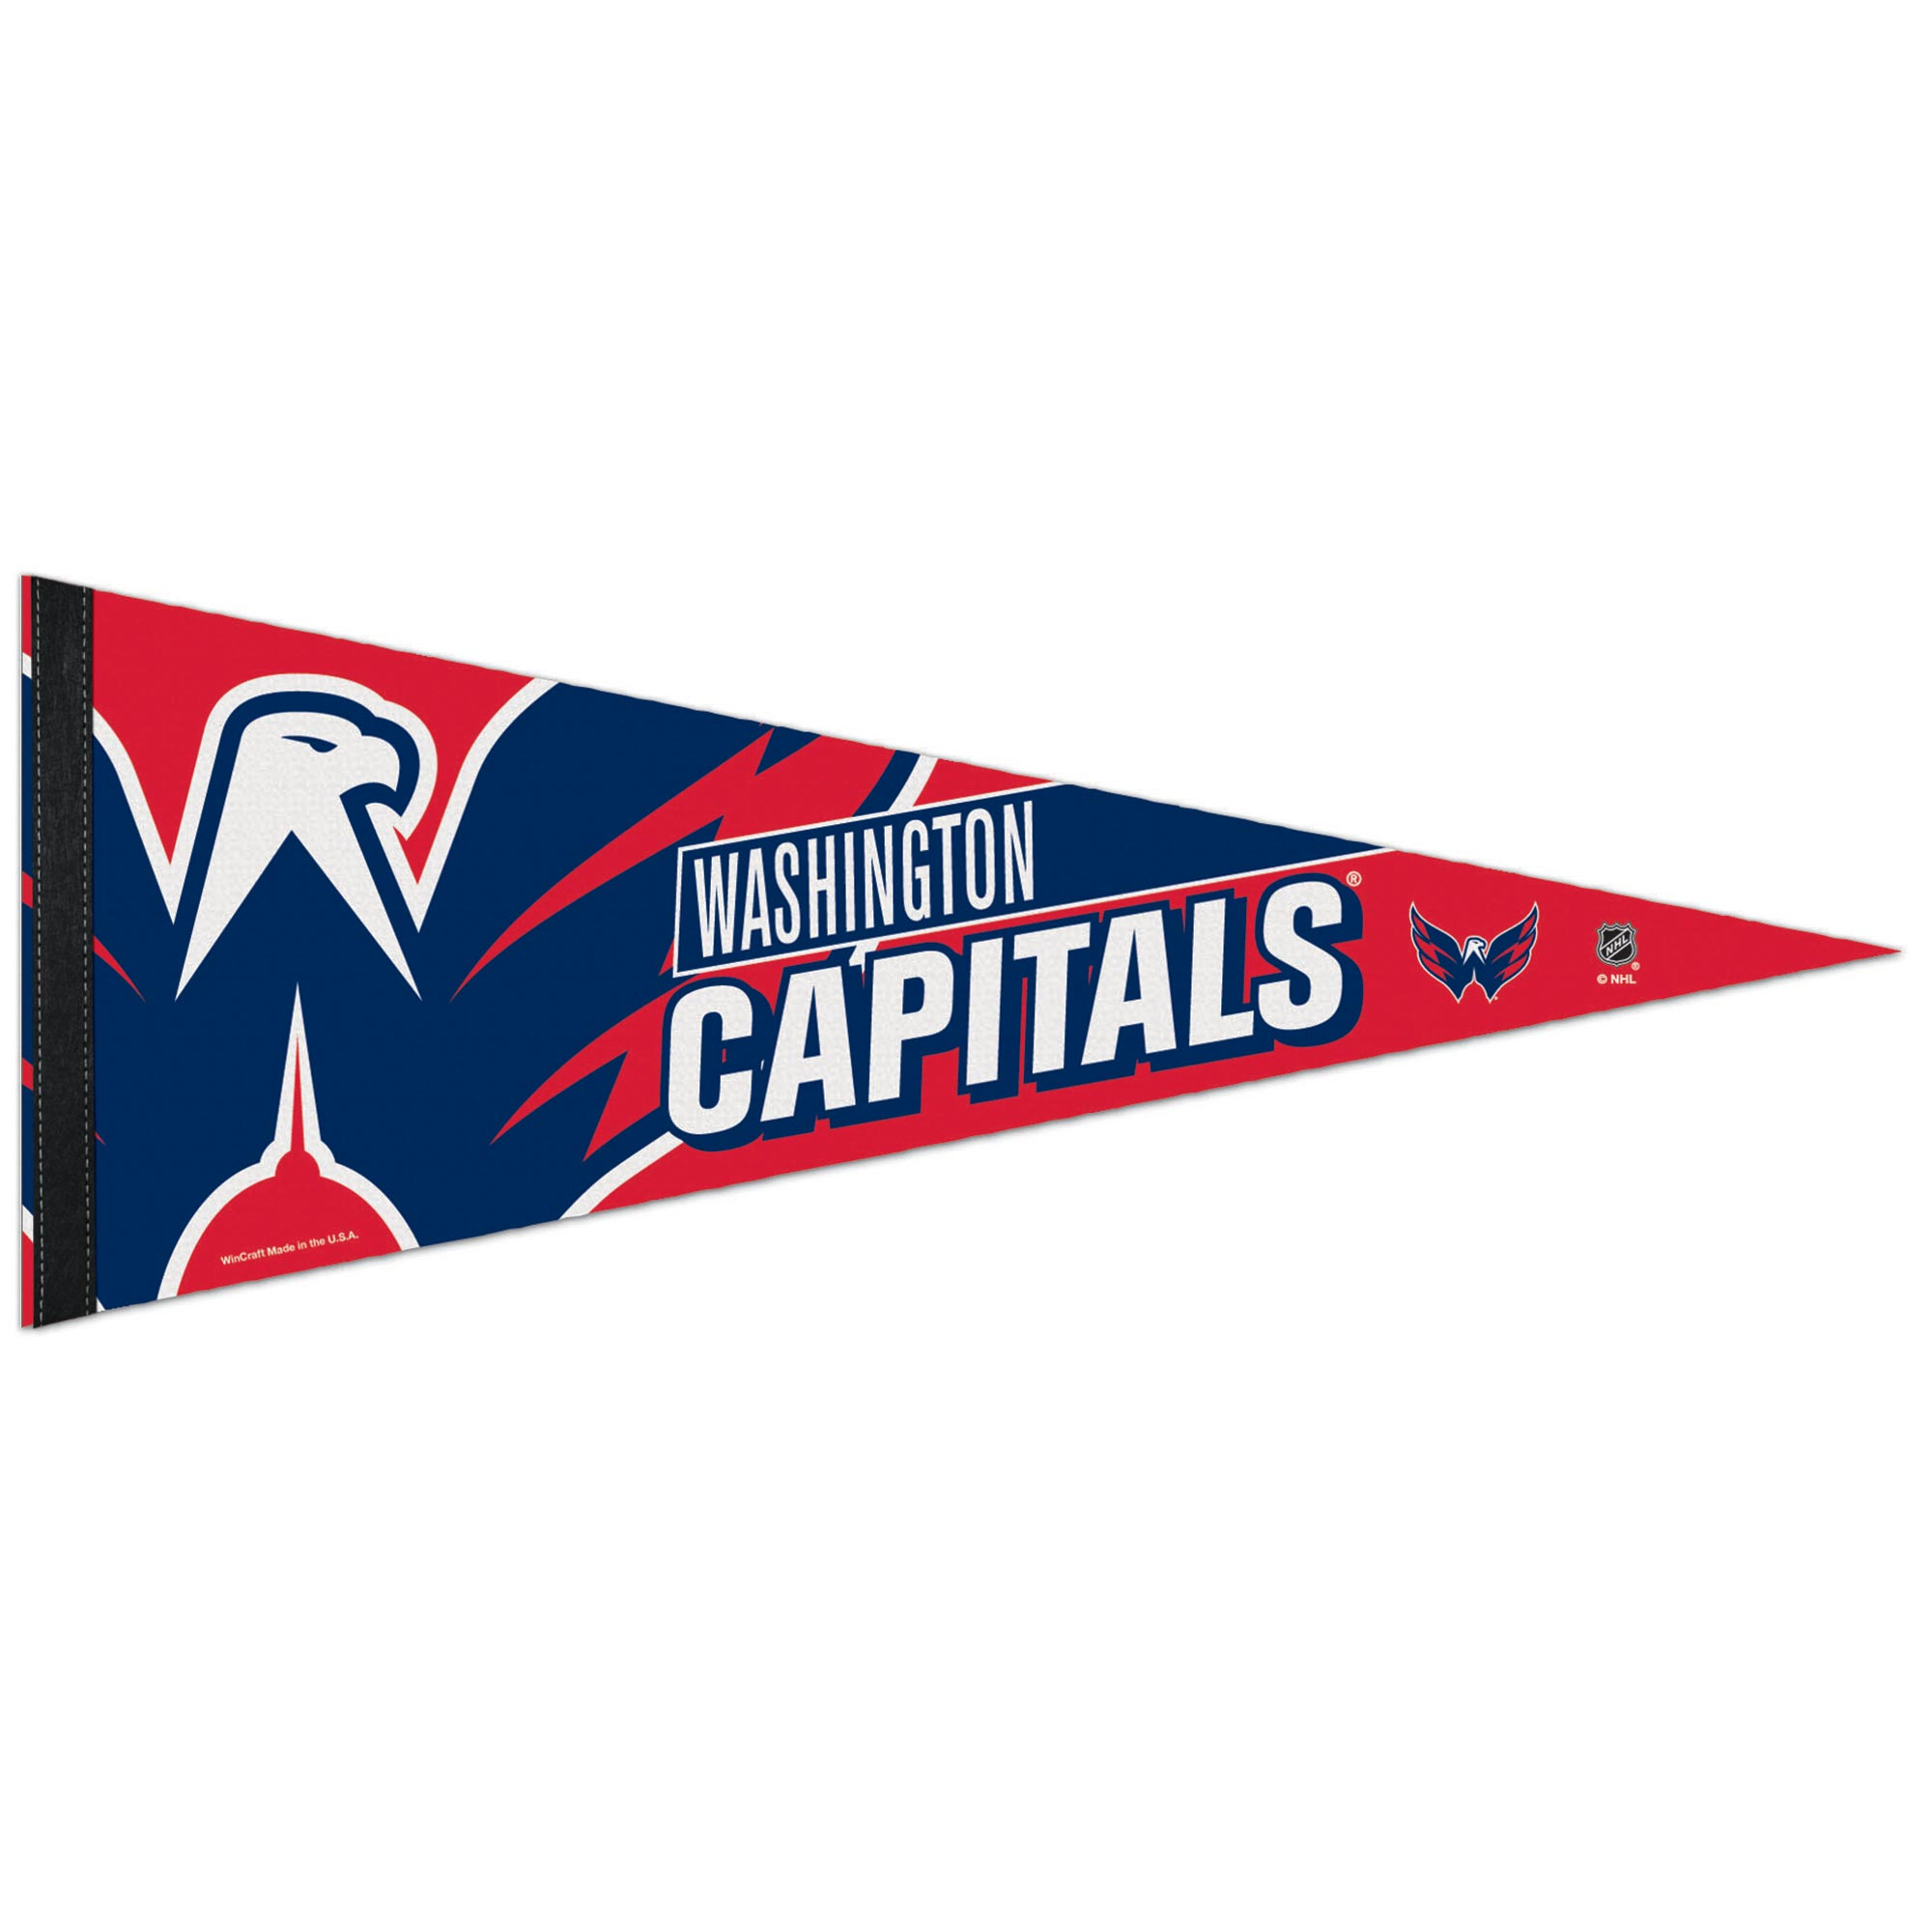 Washington Capitals Premium Pennant 12 x 30